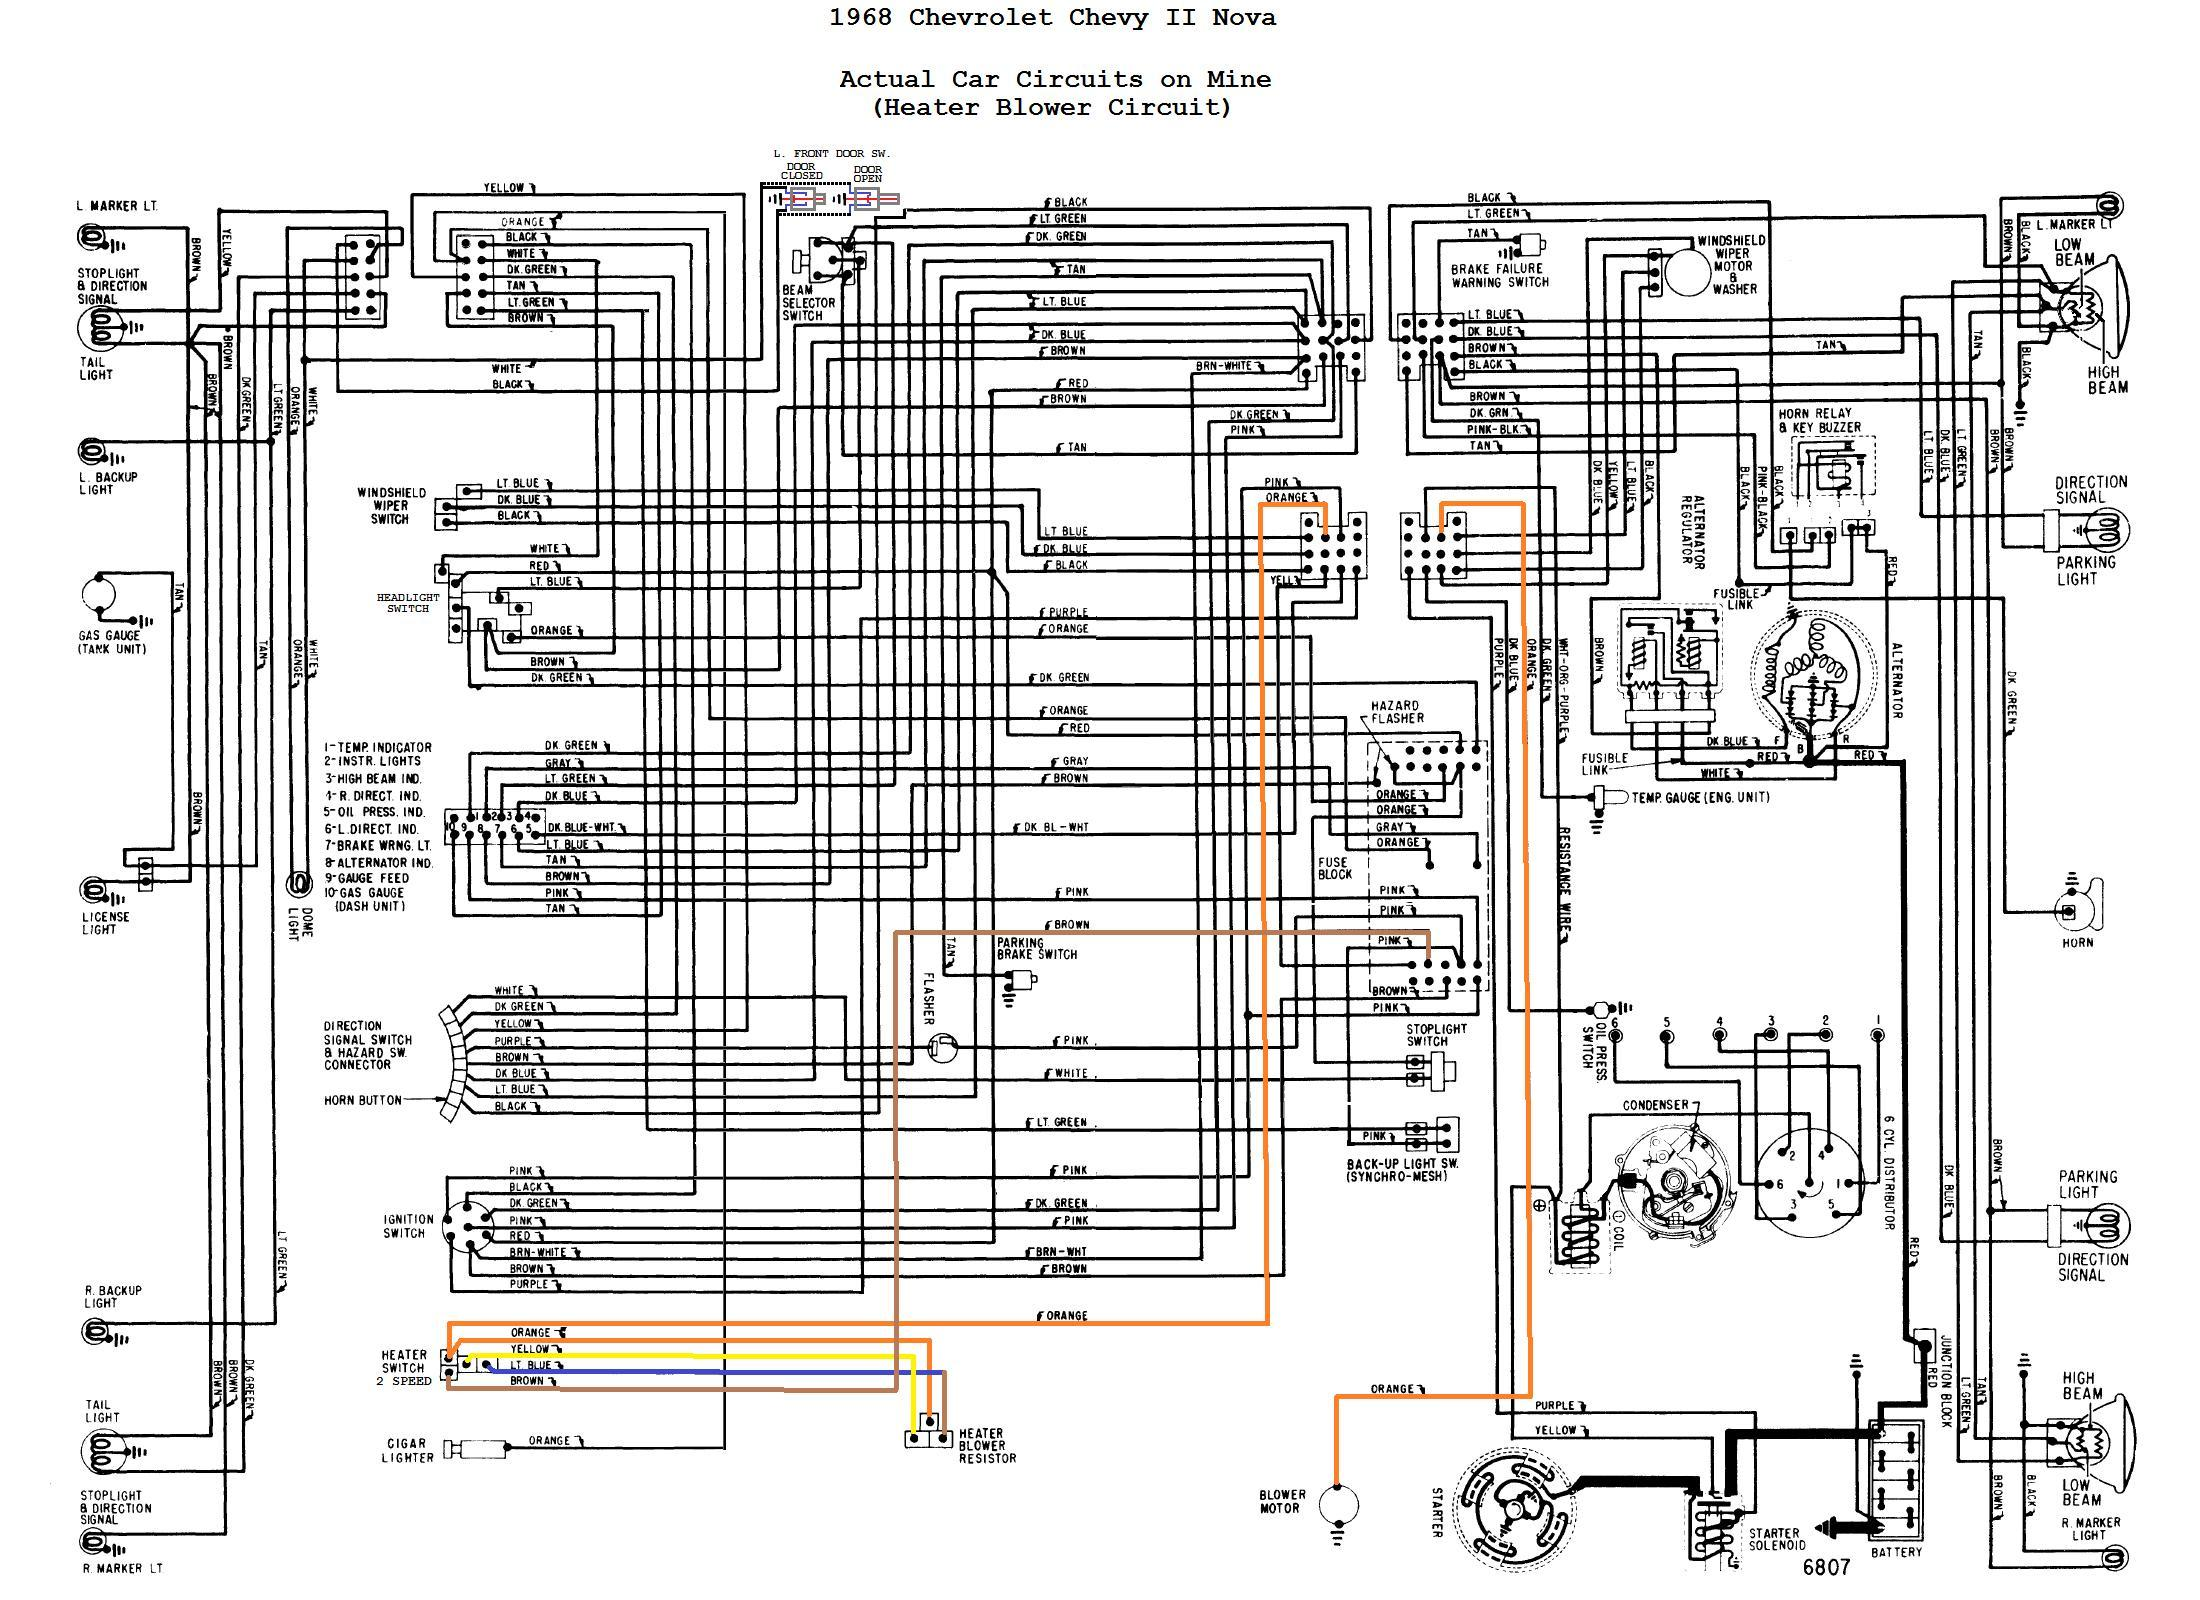 69 Pontiac Firebird Wiring Diagram - 69 Cougar Dash Wiring Diagram -  furnaces.yenpancane.jeanjaures37.frWiring Diagram Resource